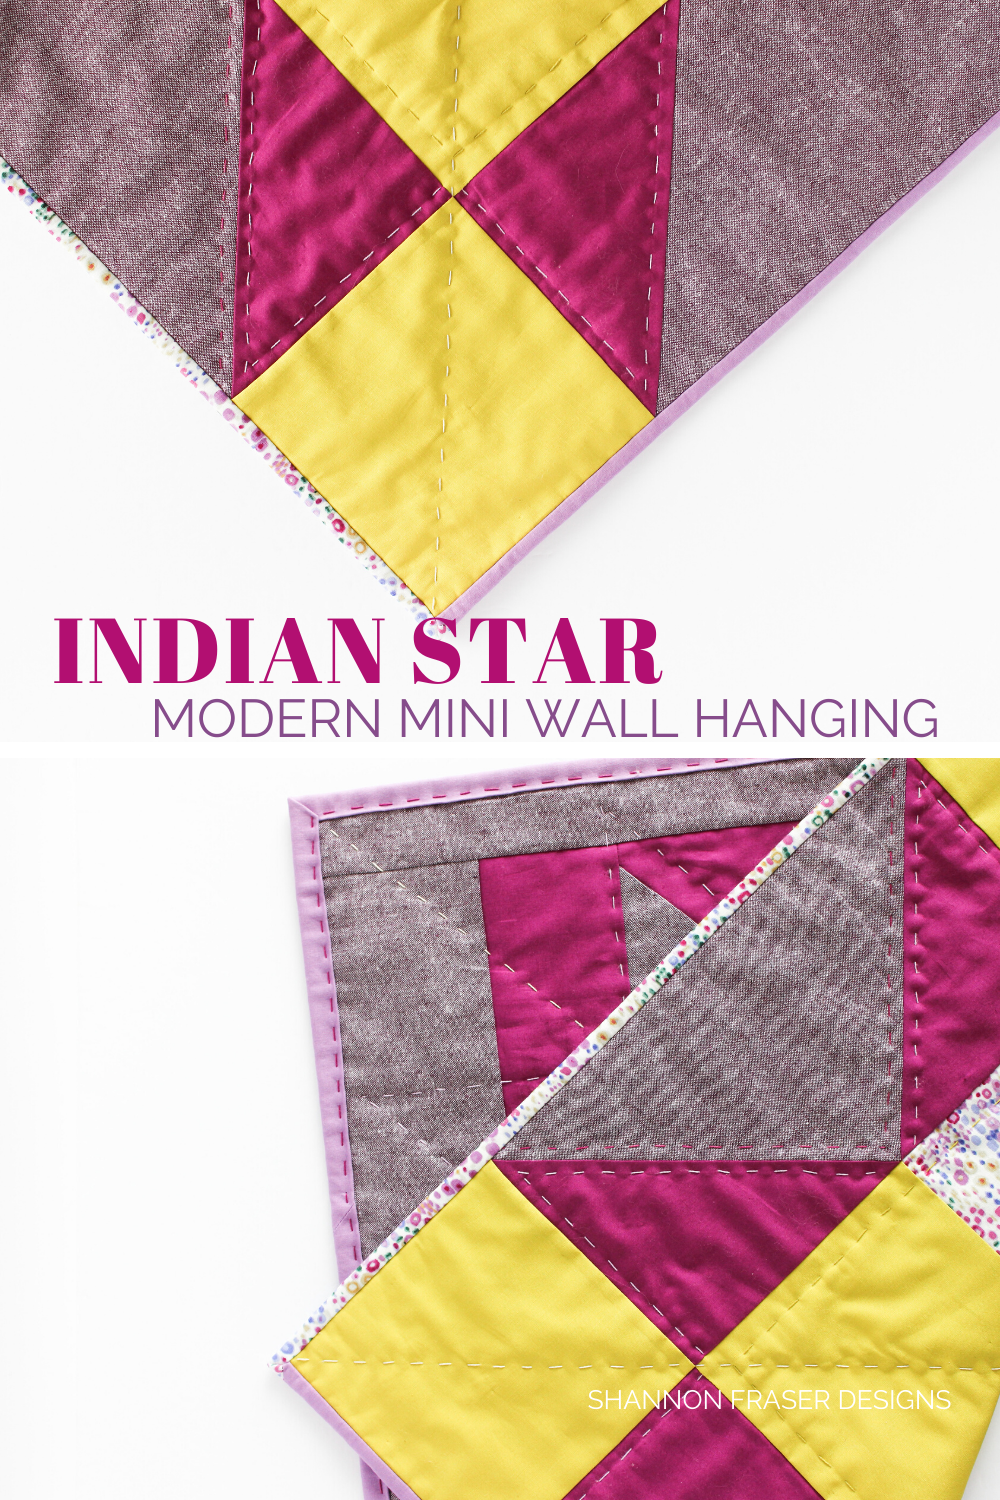 Hand quilting detail on the wasabi and purple Indian Star mini quilted wall hanging | Quilt Big Book Tour | Shannon Fraser Designs #handquilted